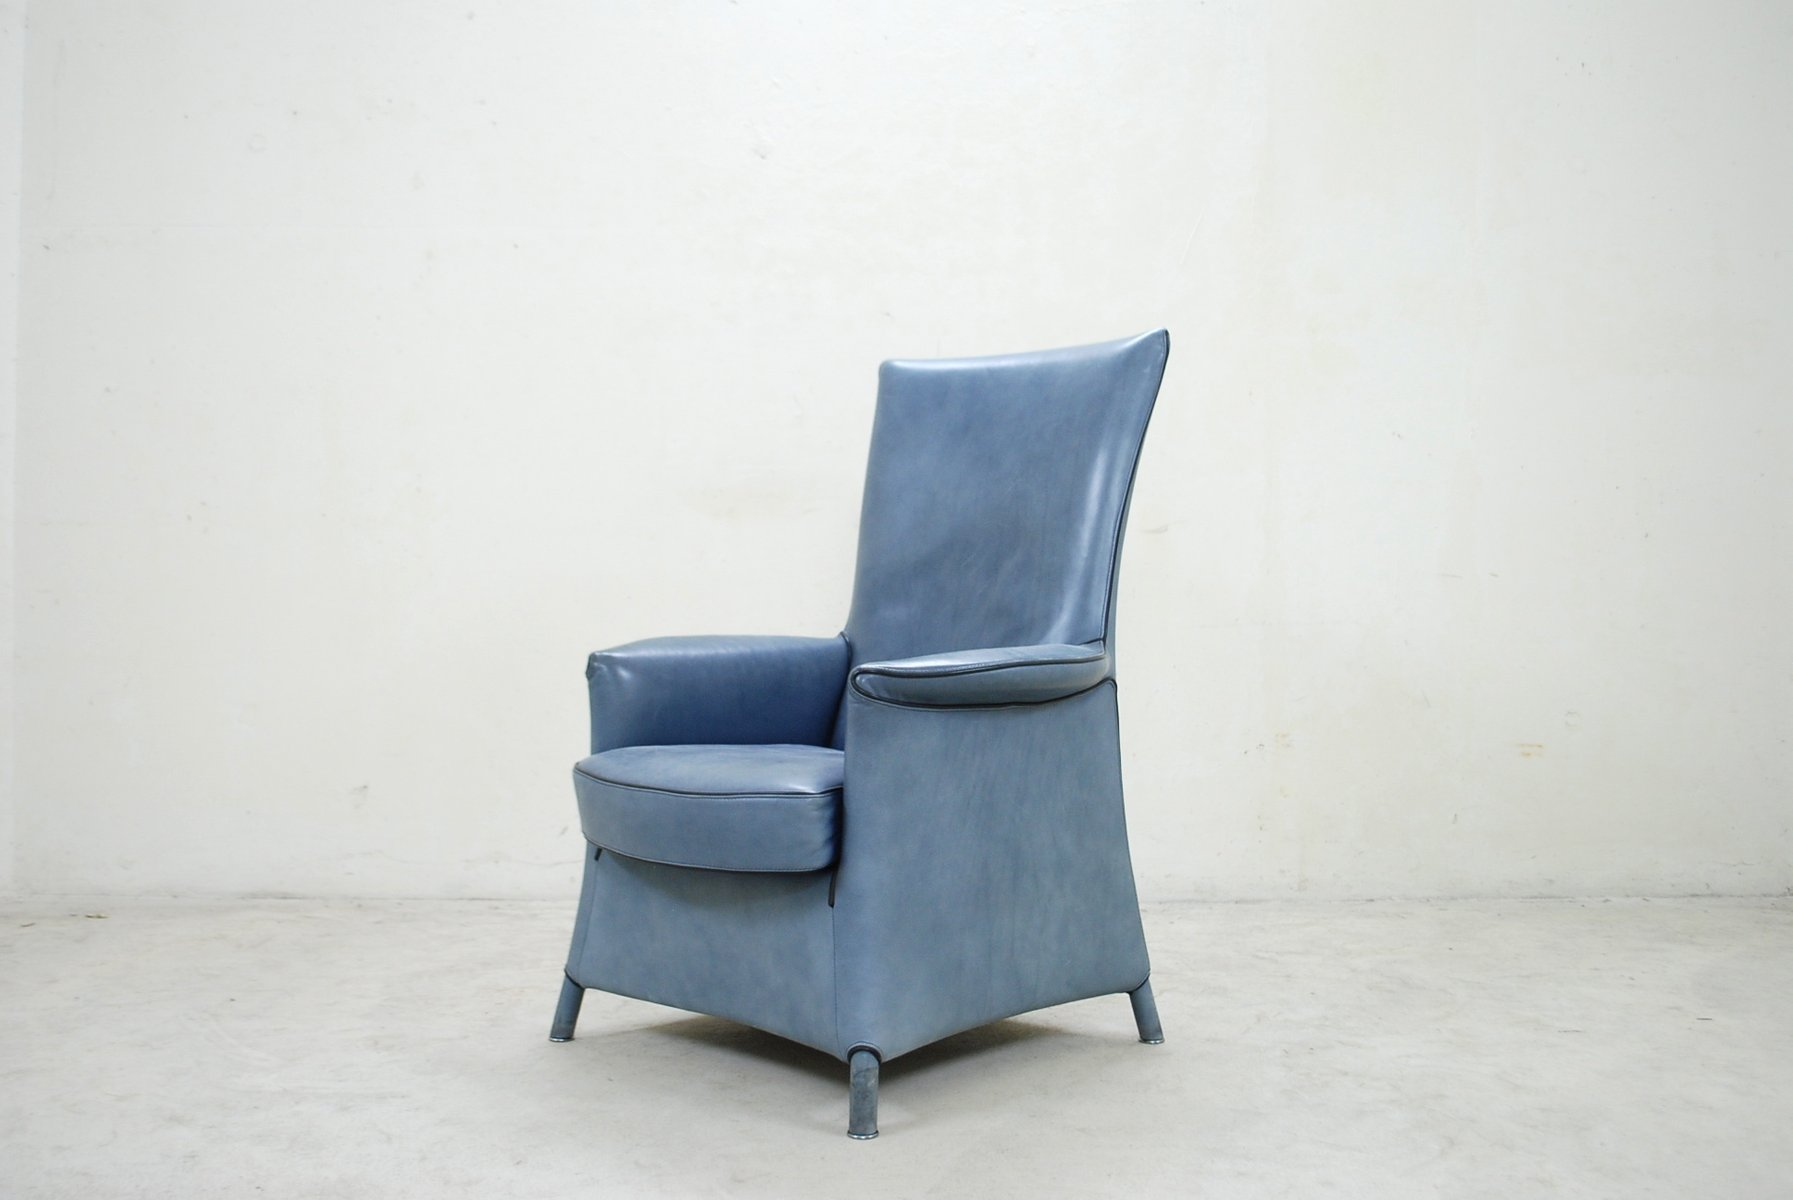 Vintage Alta Highback Armchair by Paolo Piva for Wittmann for sale